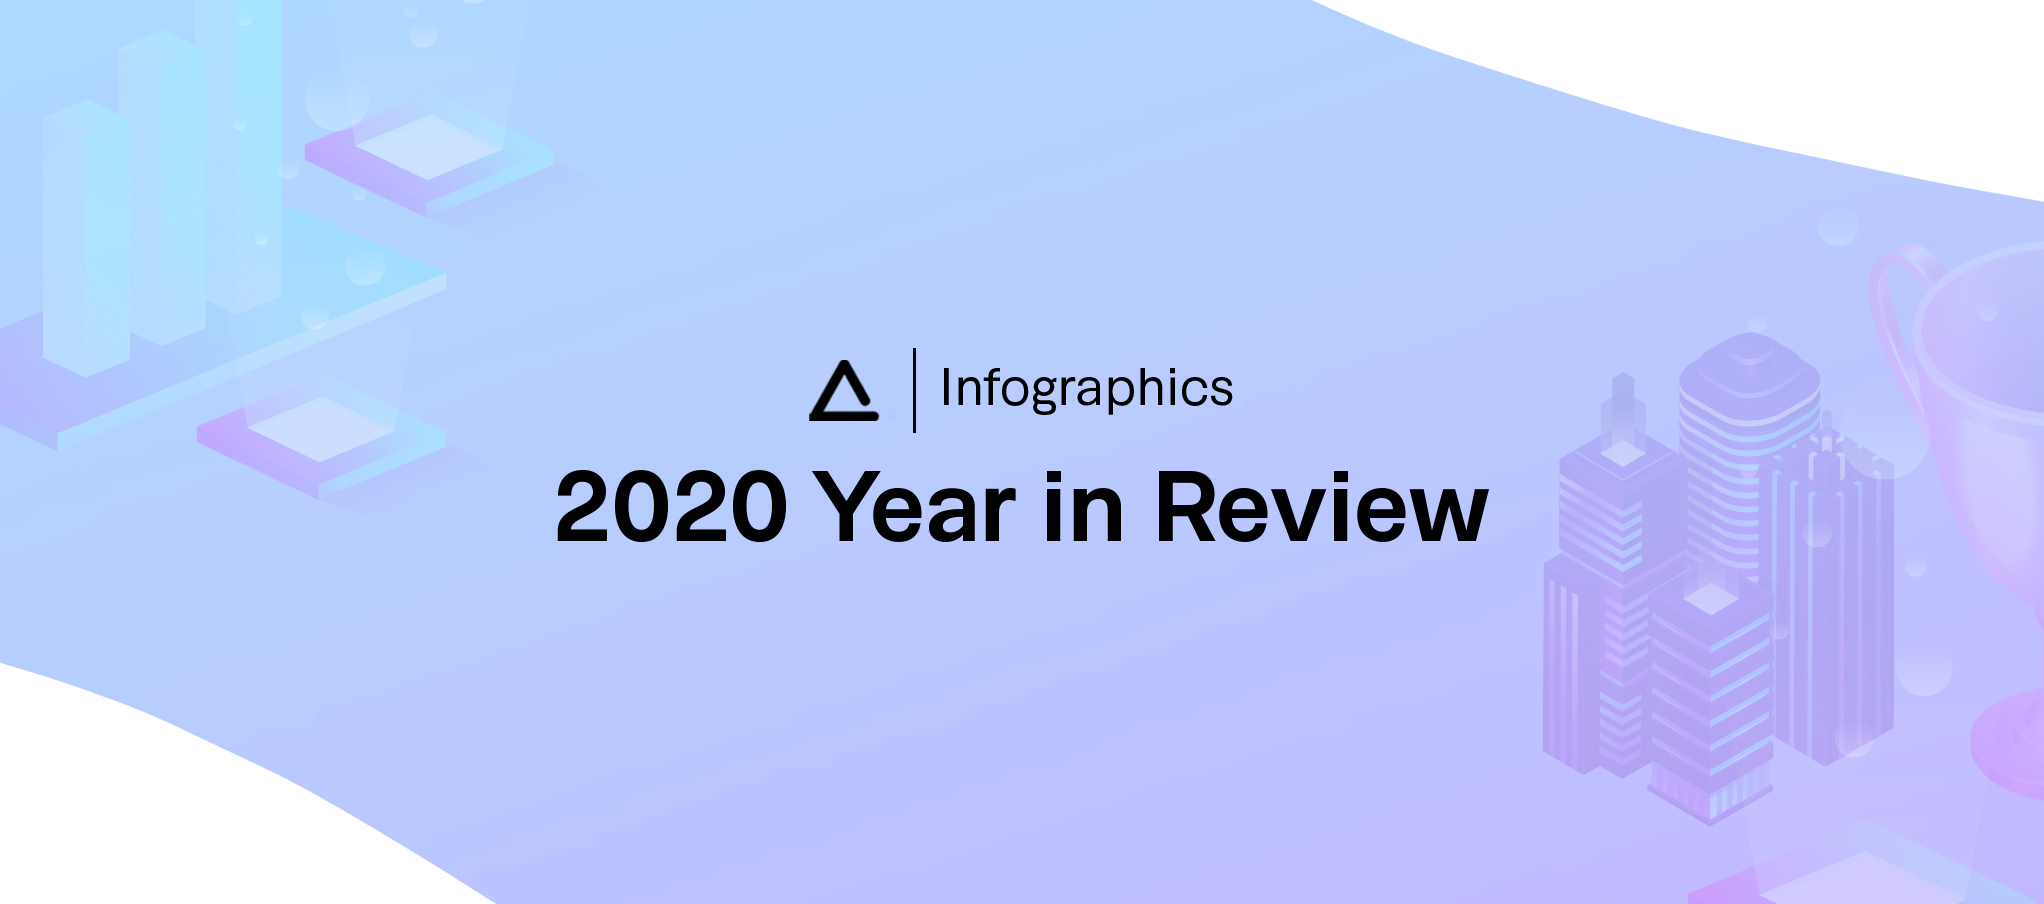 Aarki 2020 year in review infographic